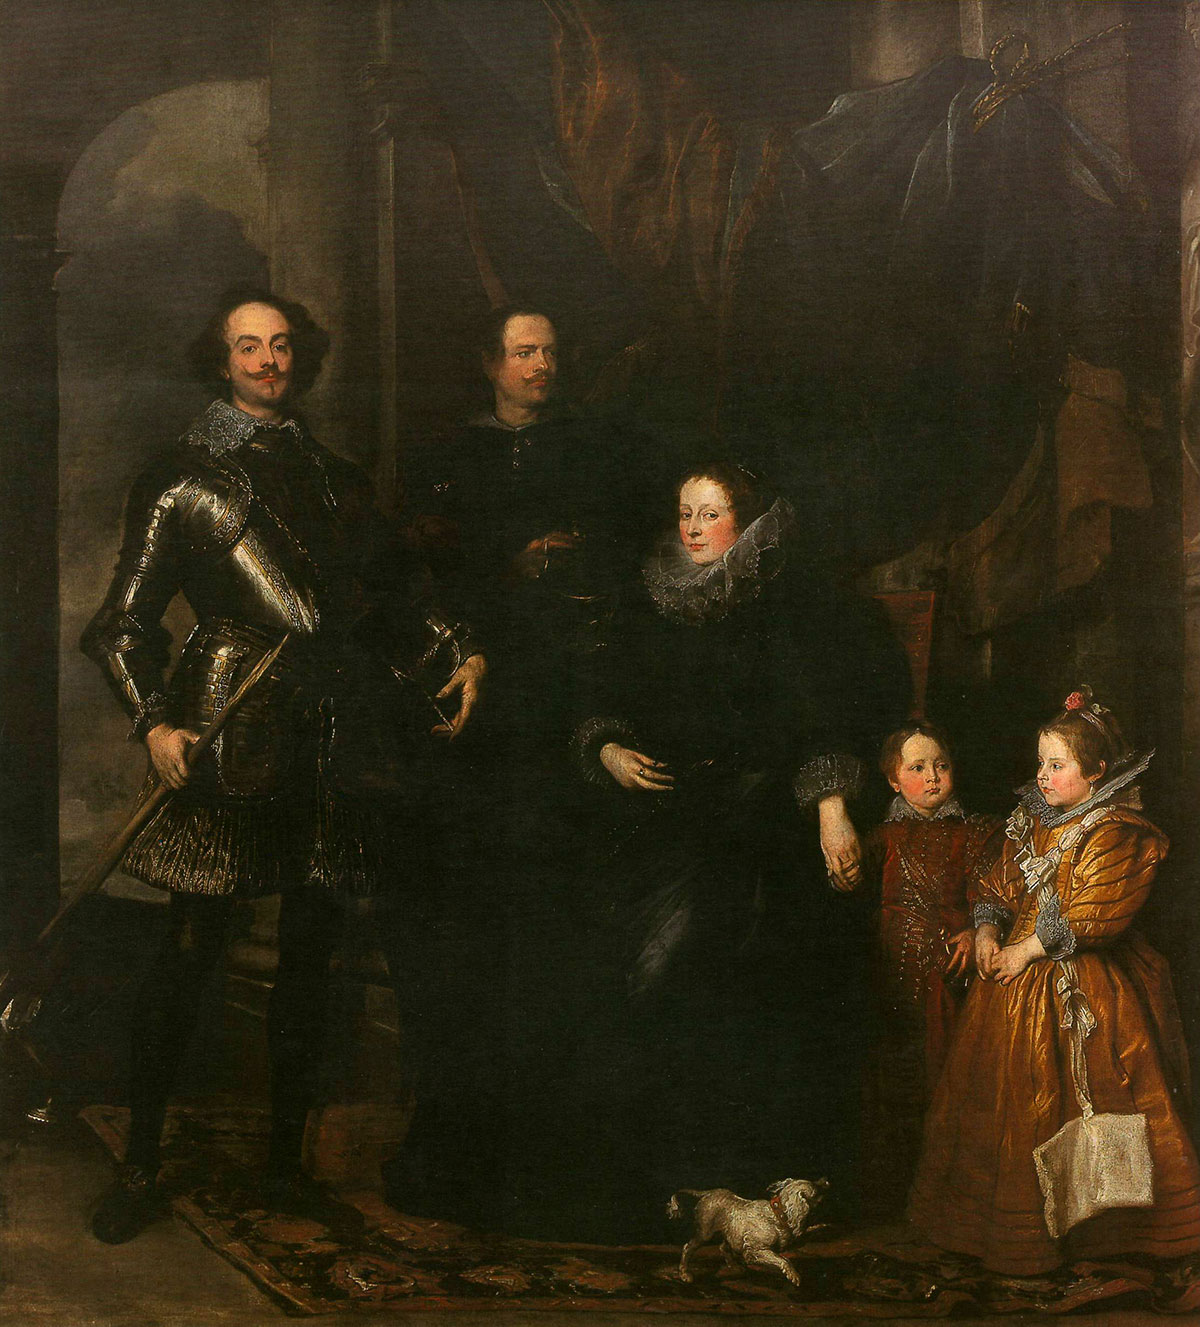 The Lomellini family + van Dyck, Antoon *magnifico